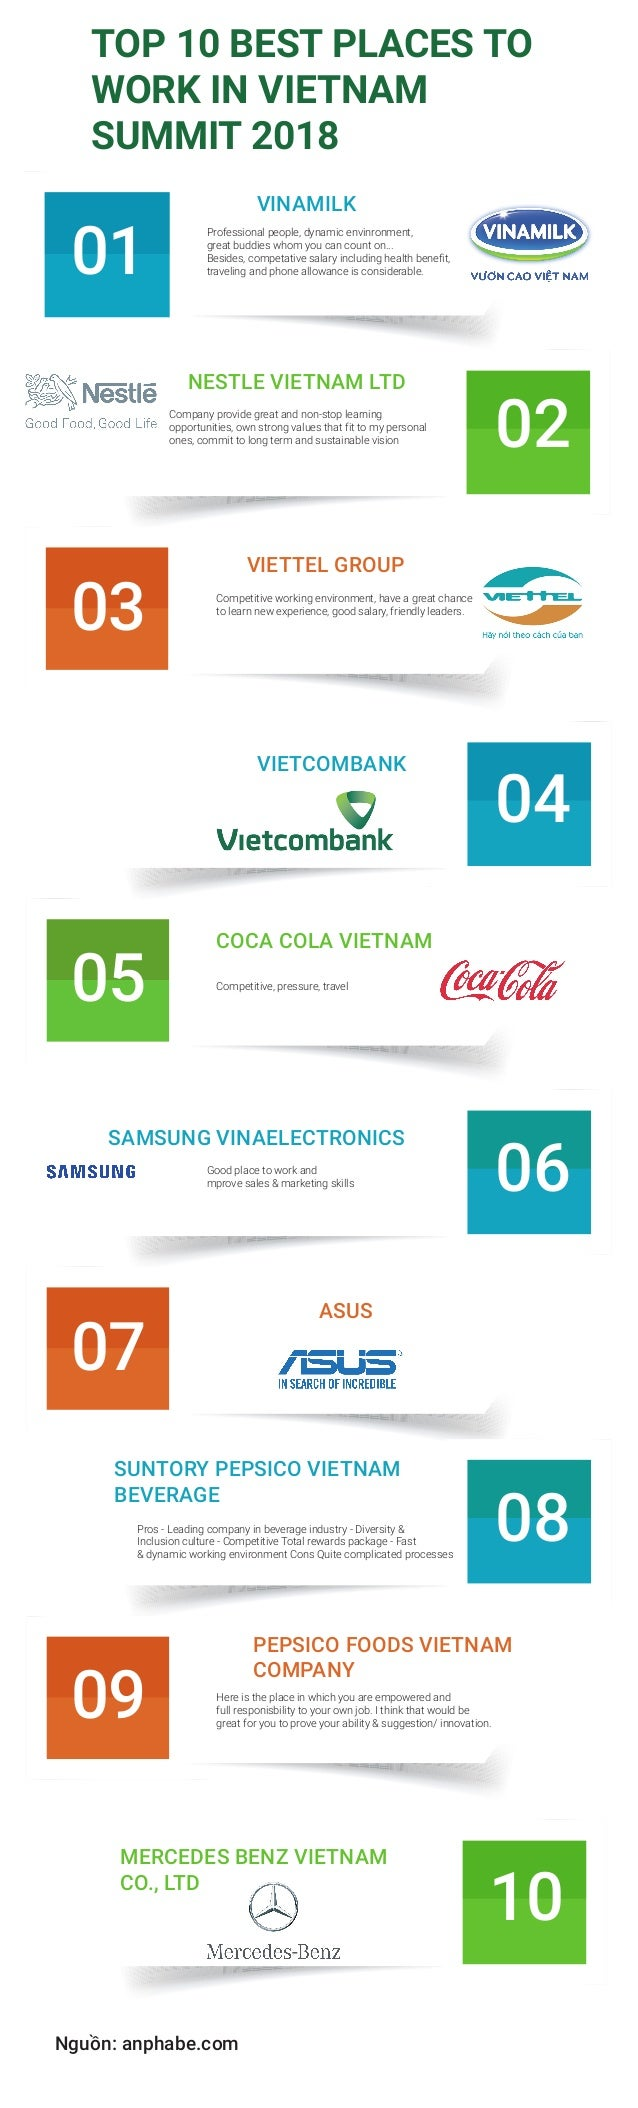 TOP 10 BEST PLACES TO WORK IN VIETNAM SUMMIT 2018 VINAMILK Professional people, dynamic envinronment, great buddies whom y...